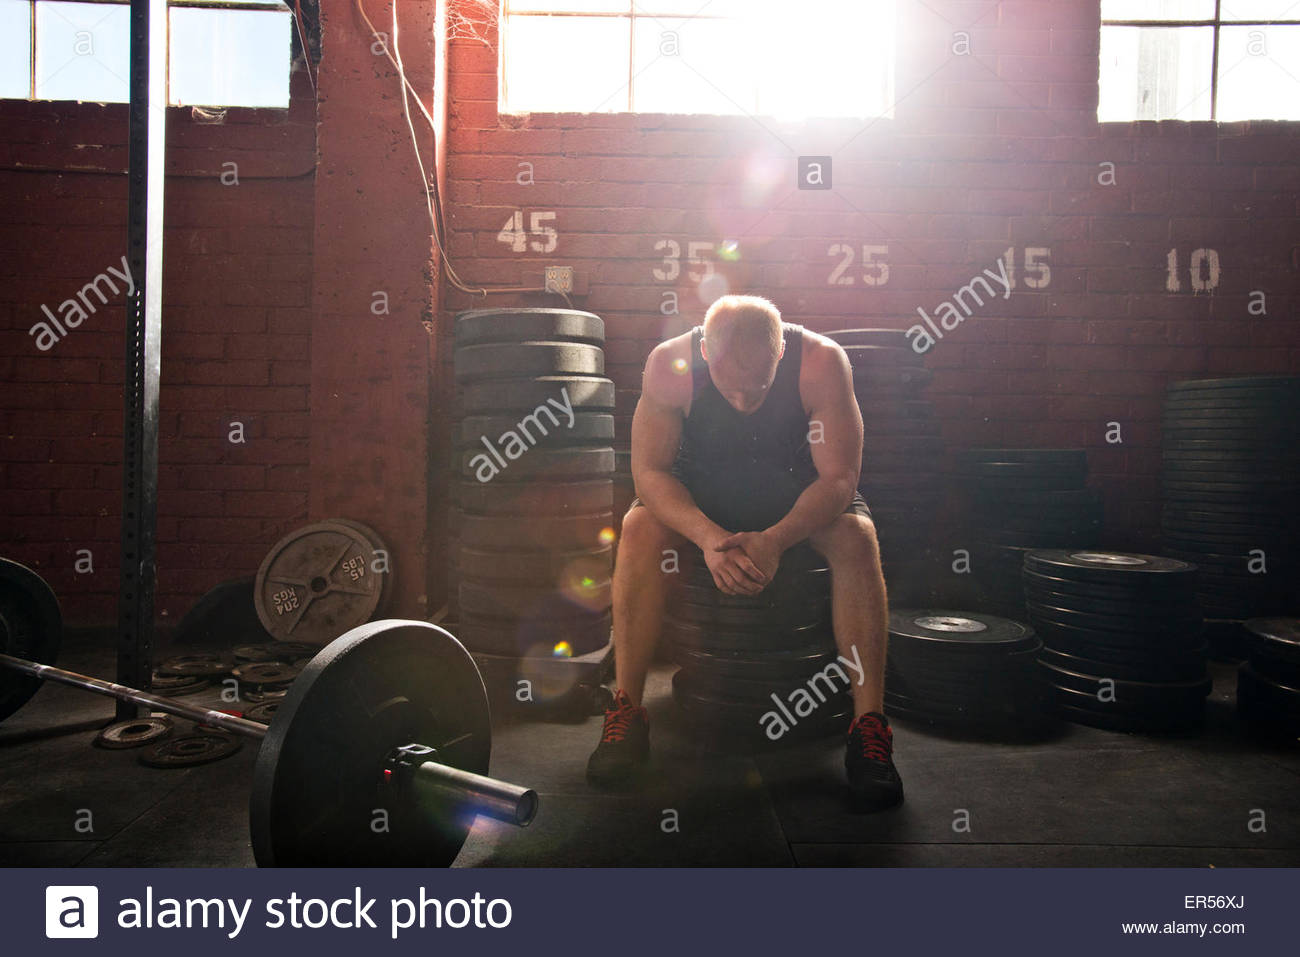 A crossfit athlete rests after a workout. - Stock Image